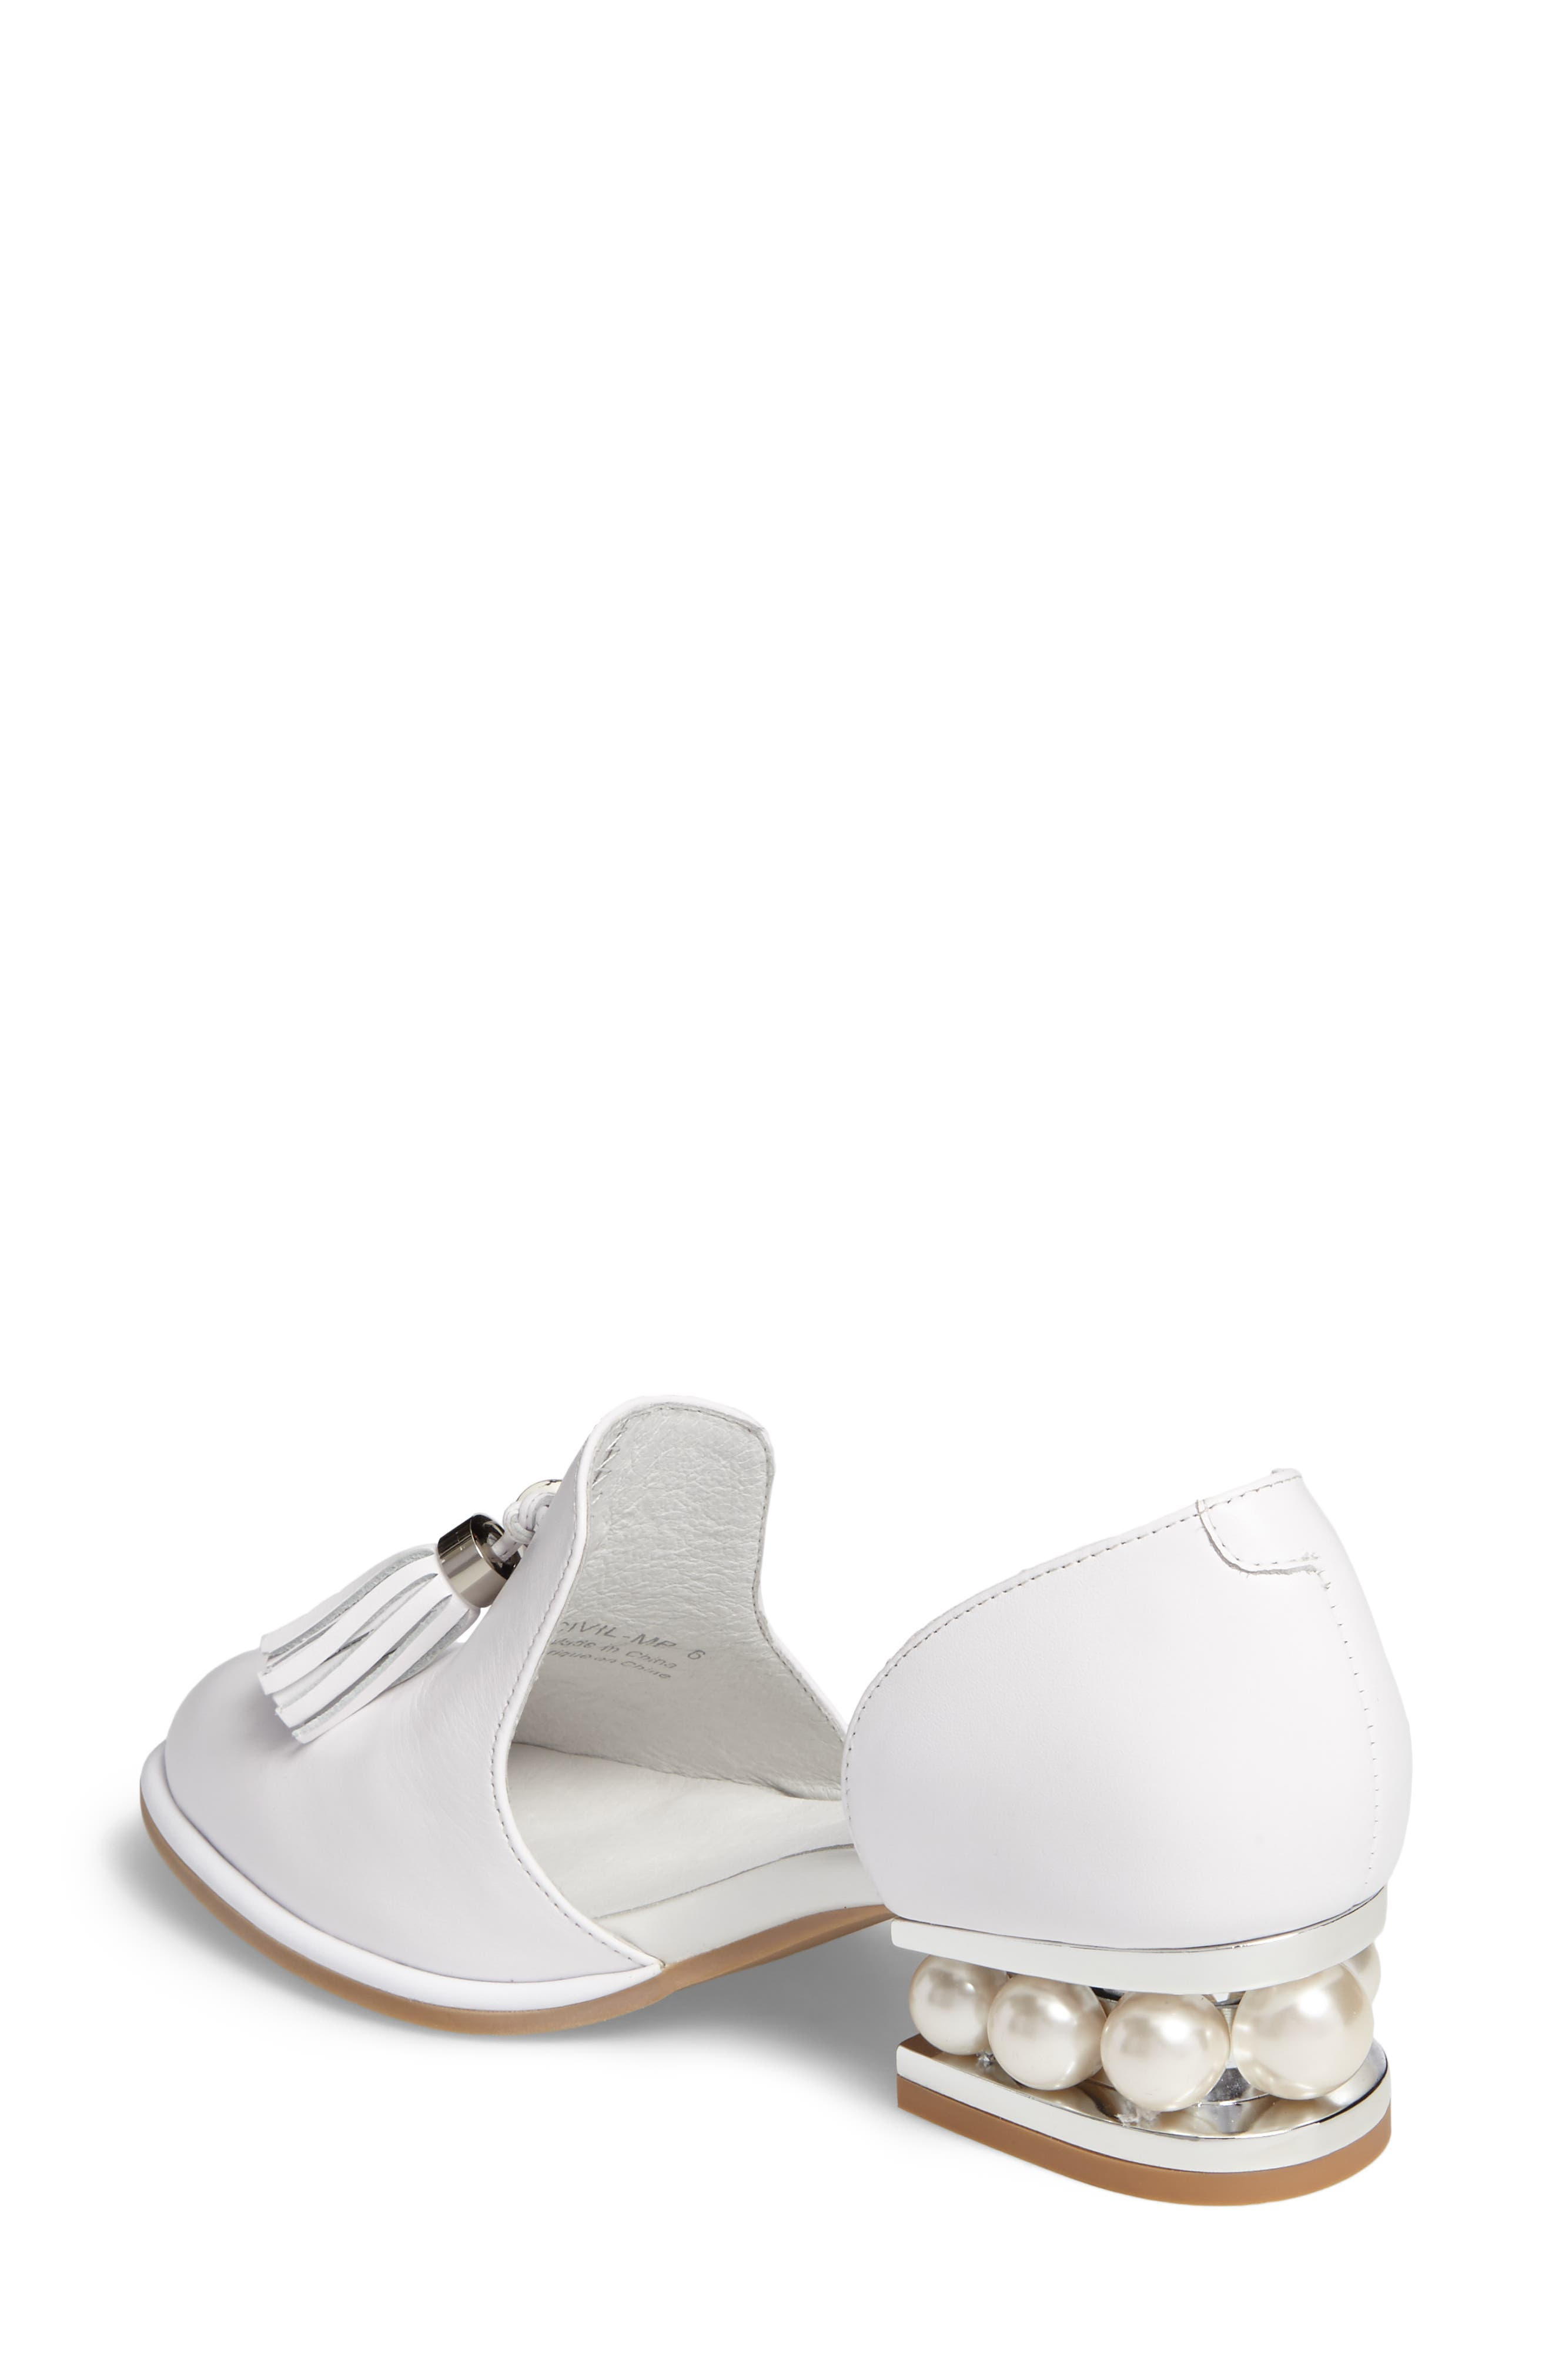 Alternate Image 2  - Jeffrey Campbell 'Civil' Pearly Heeled Beaded Tassel Loafer (Women)